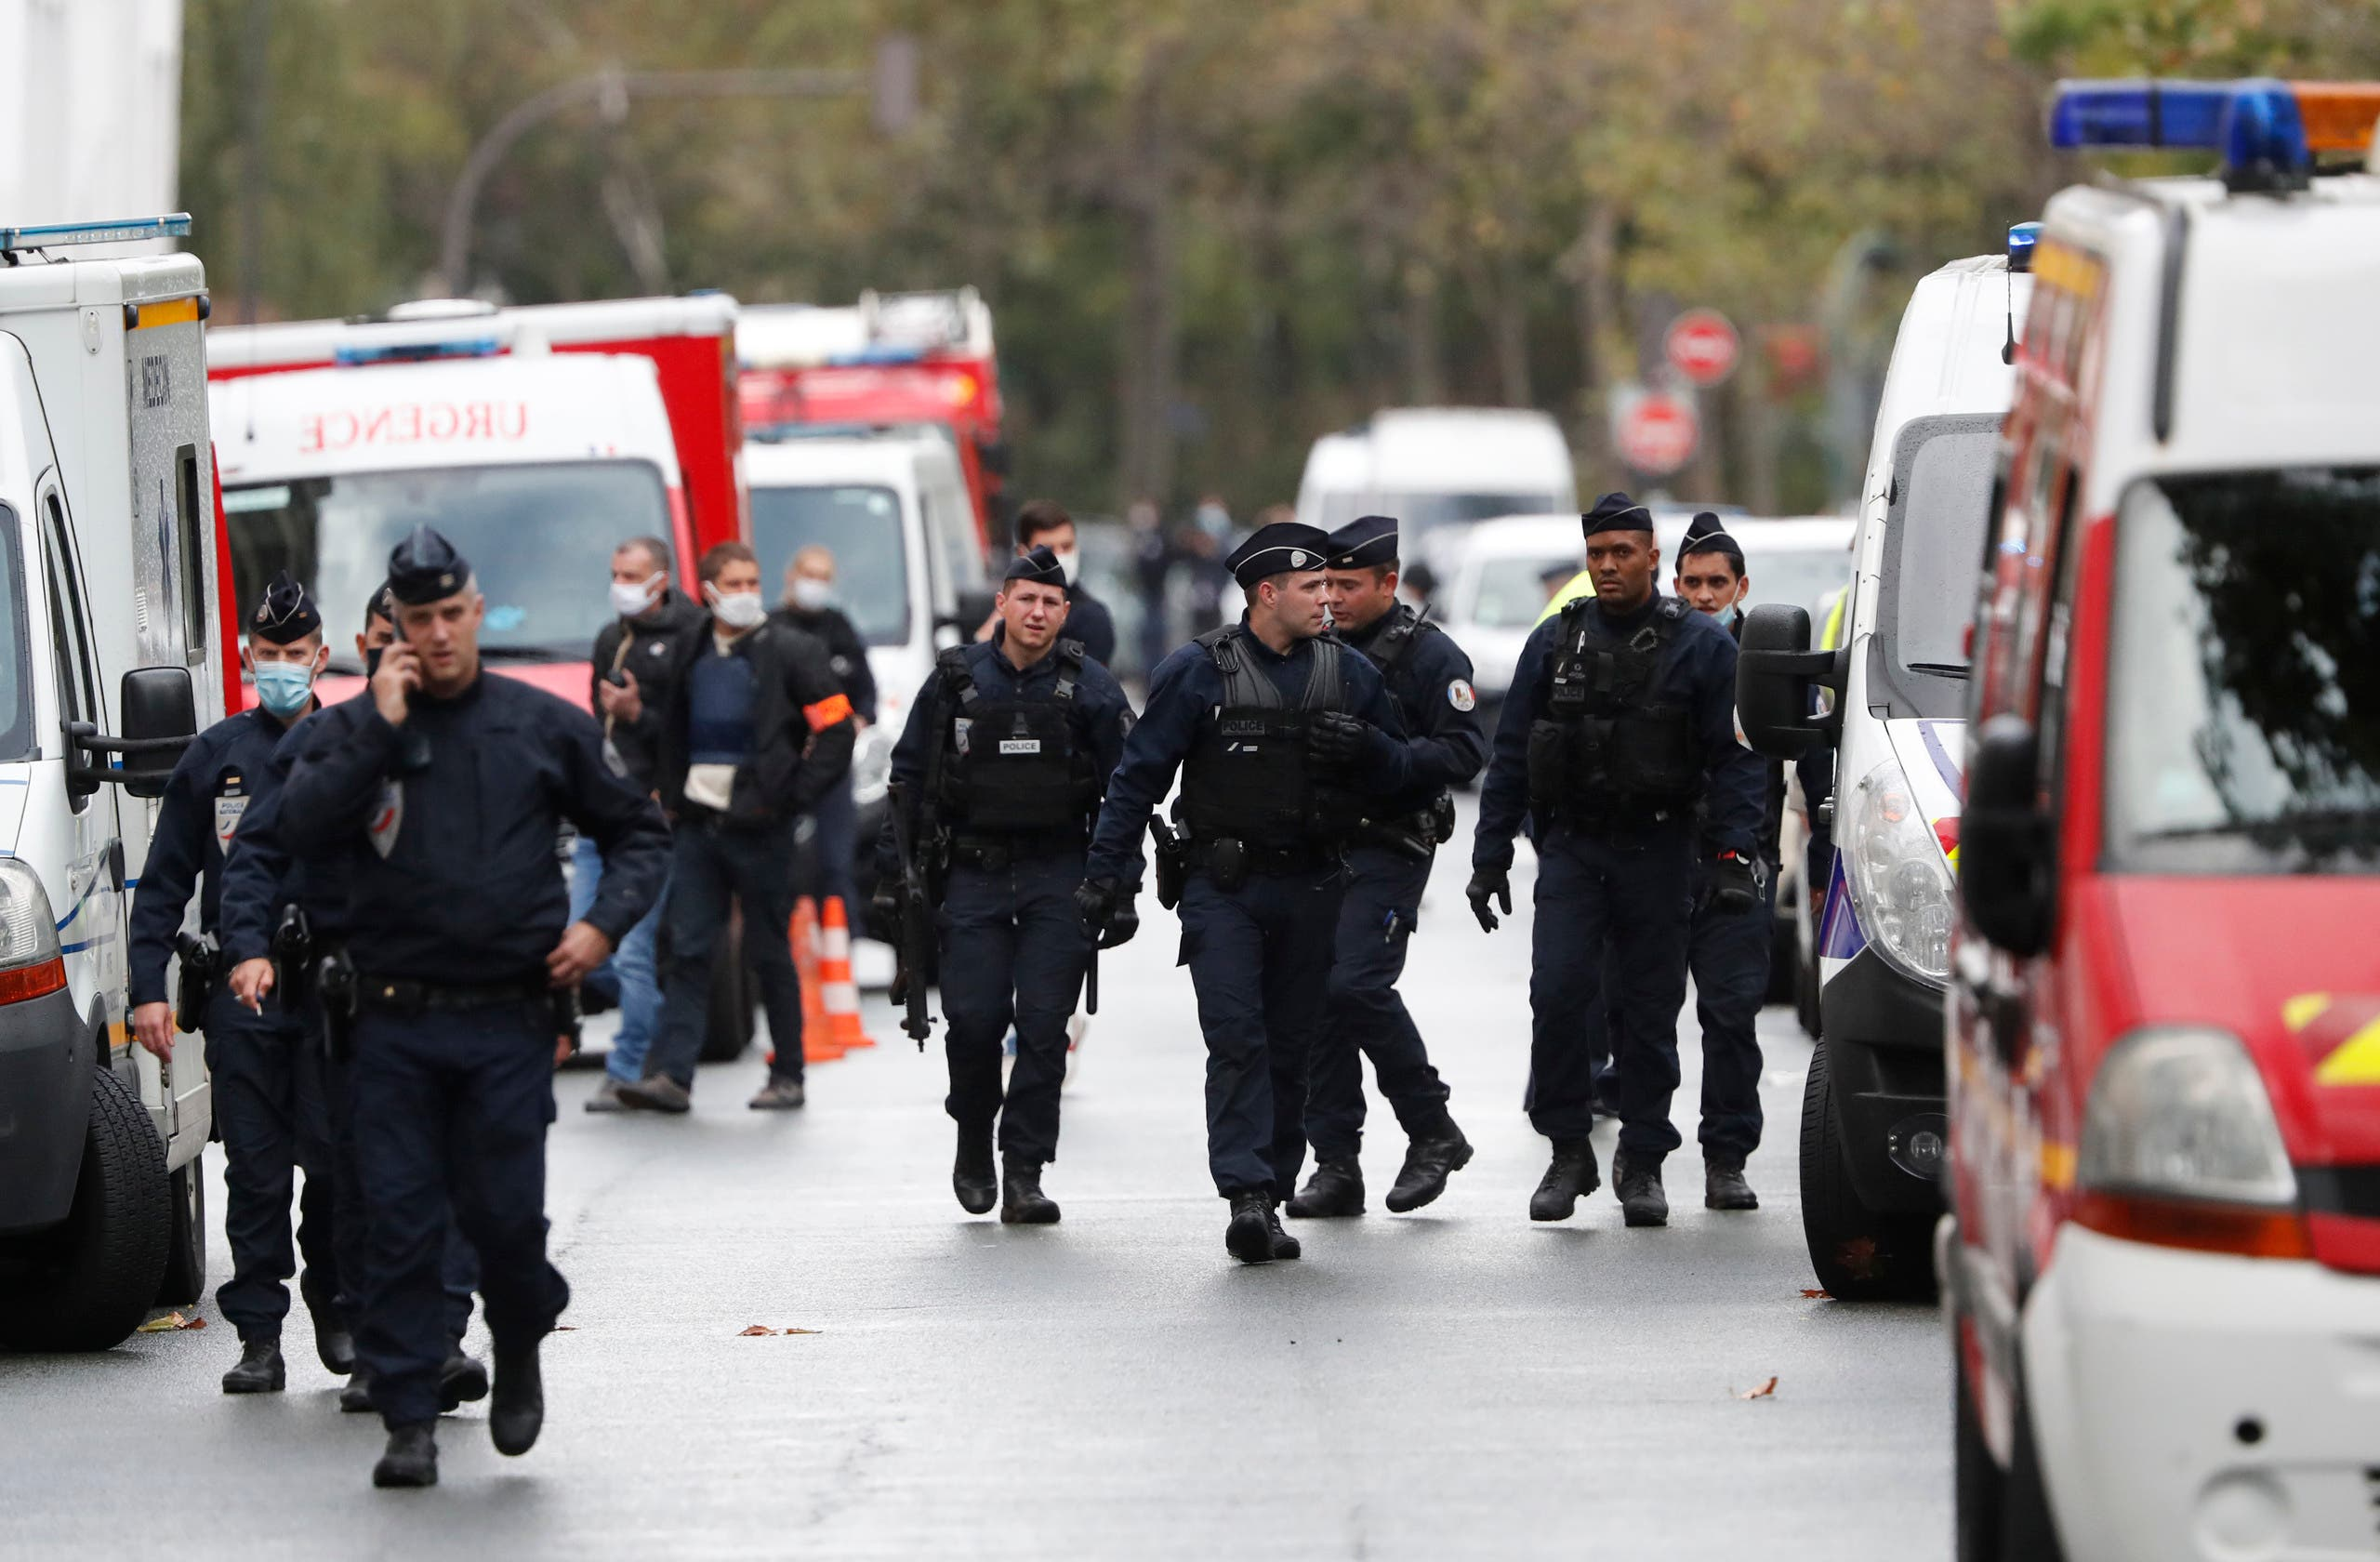 French police officers patrol after four people have been wounded in a knife attack near the former offices of satirical newspaper Charlie Hebdo. (AP)